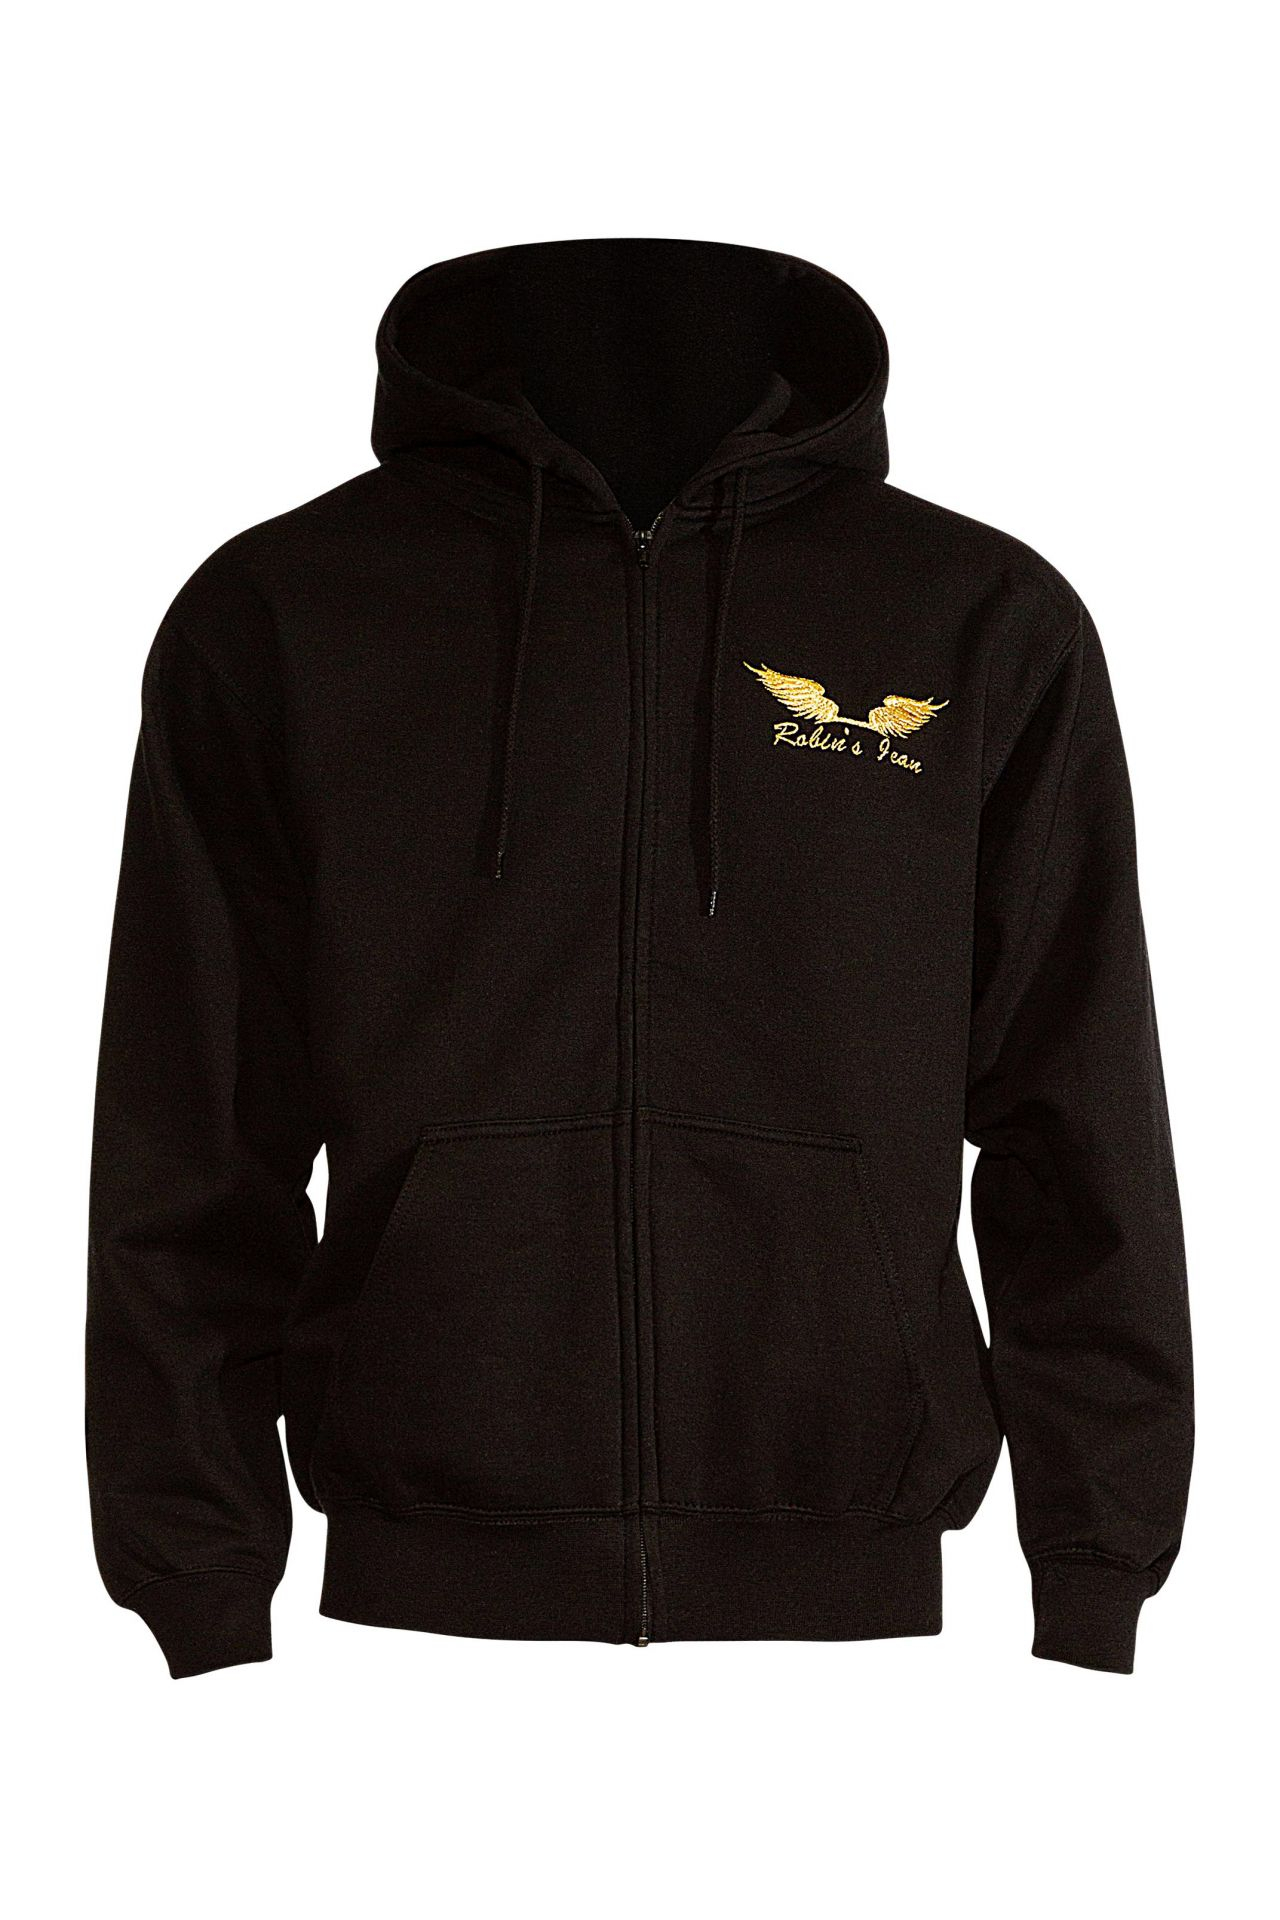 GOLD WINGS ZIP HOODIE IN BLACK